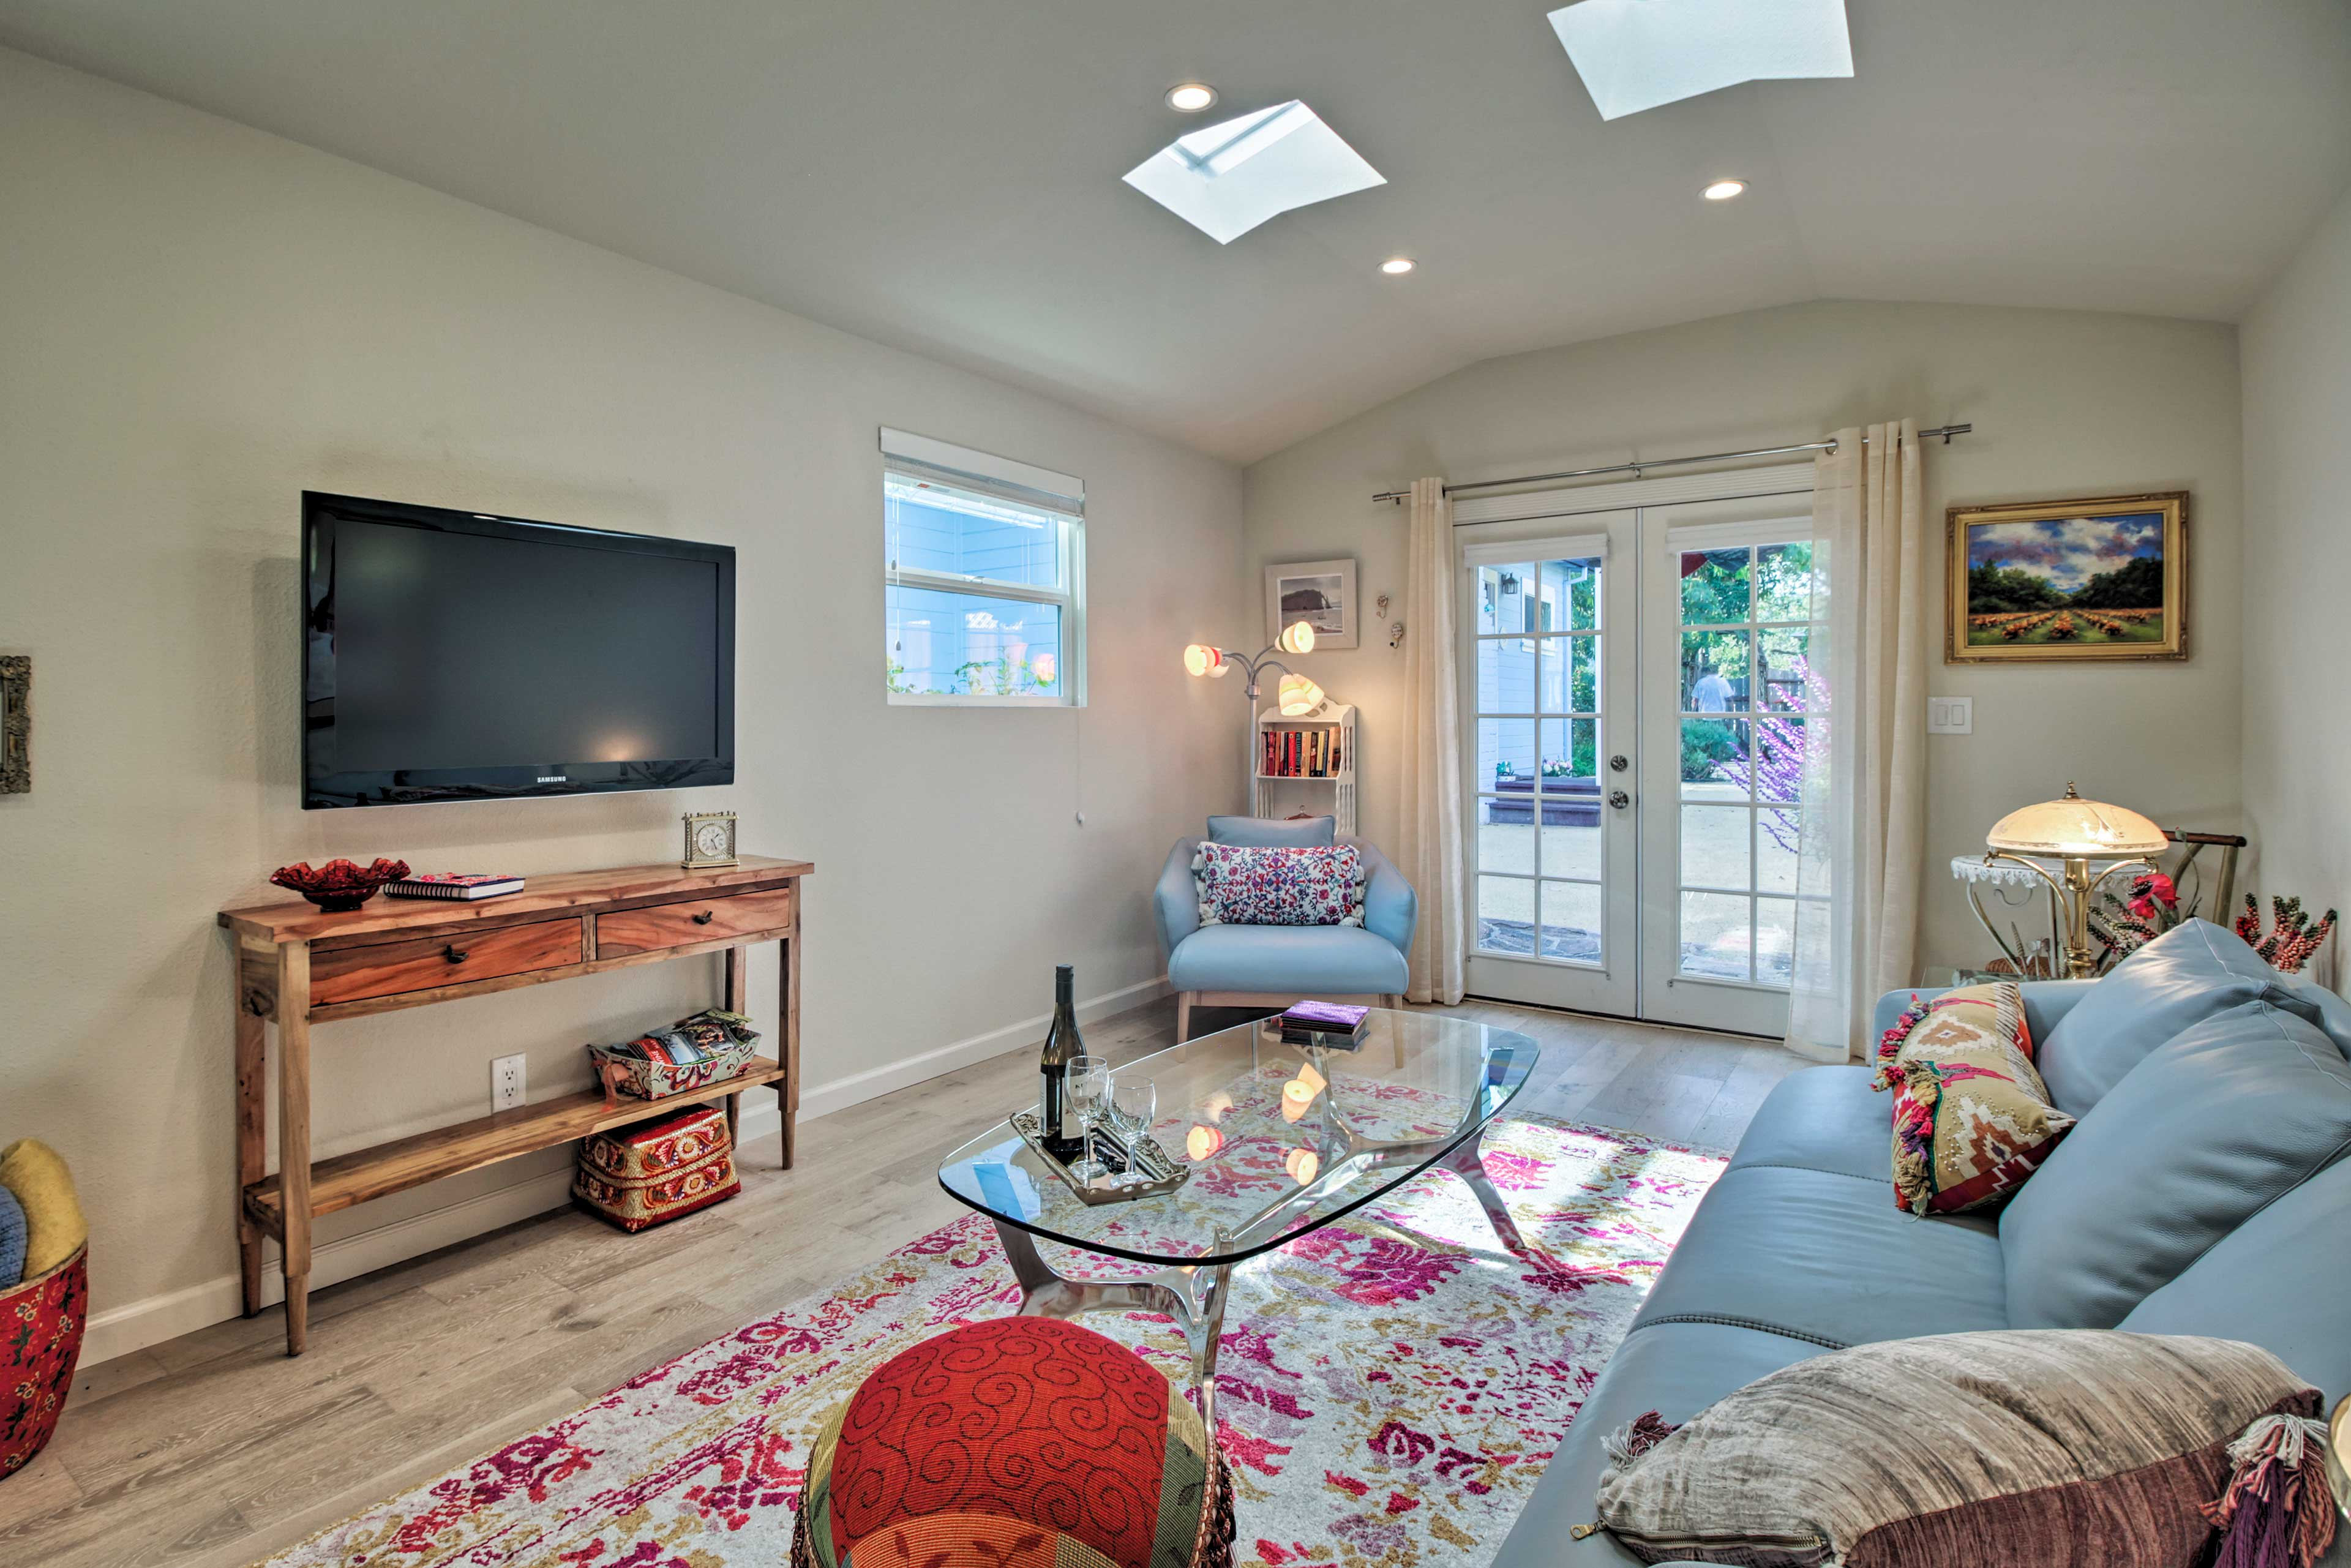 The stunning interior boasts nearly 500 square feet for 2 guests.